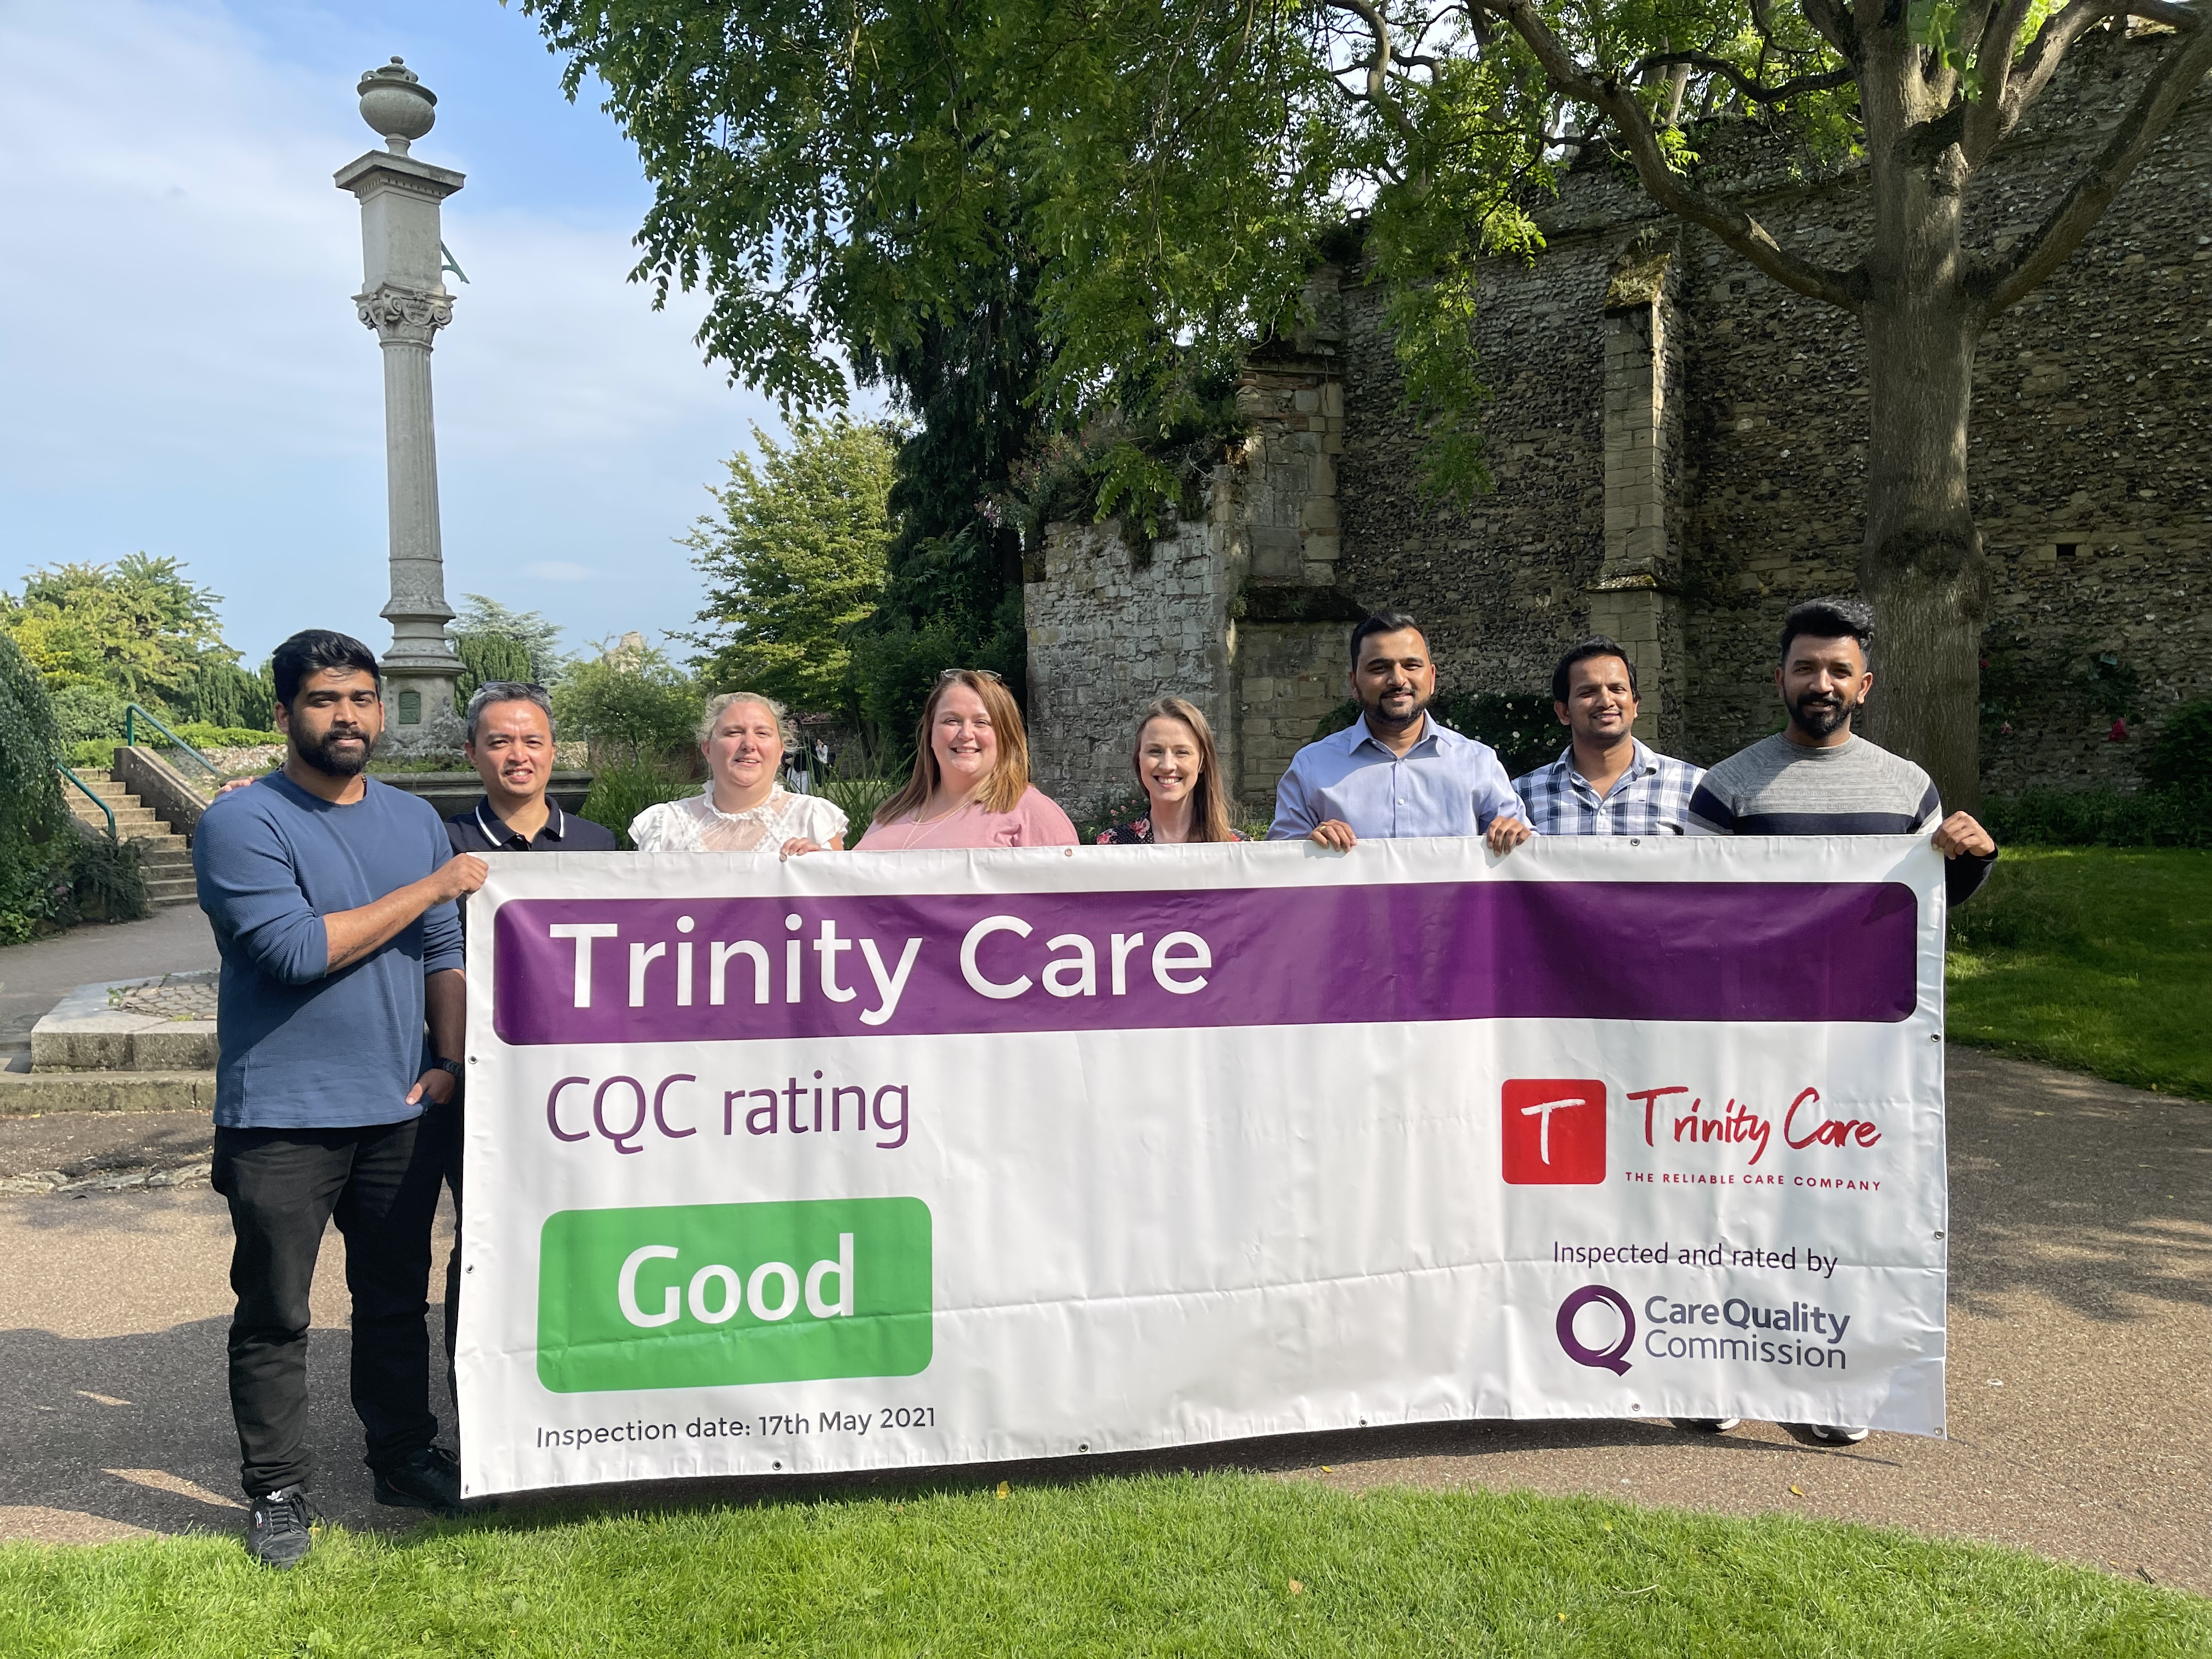 Trinity Carestaff Solutions Ltd Rated As 'GOOD' By The Care Quality Commission